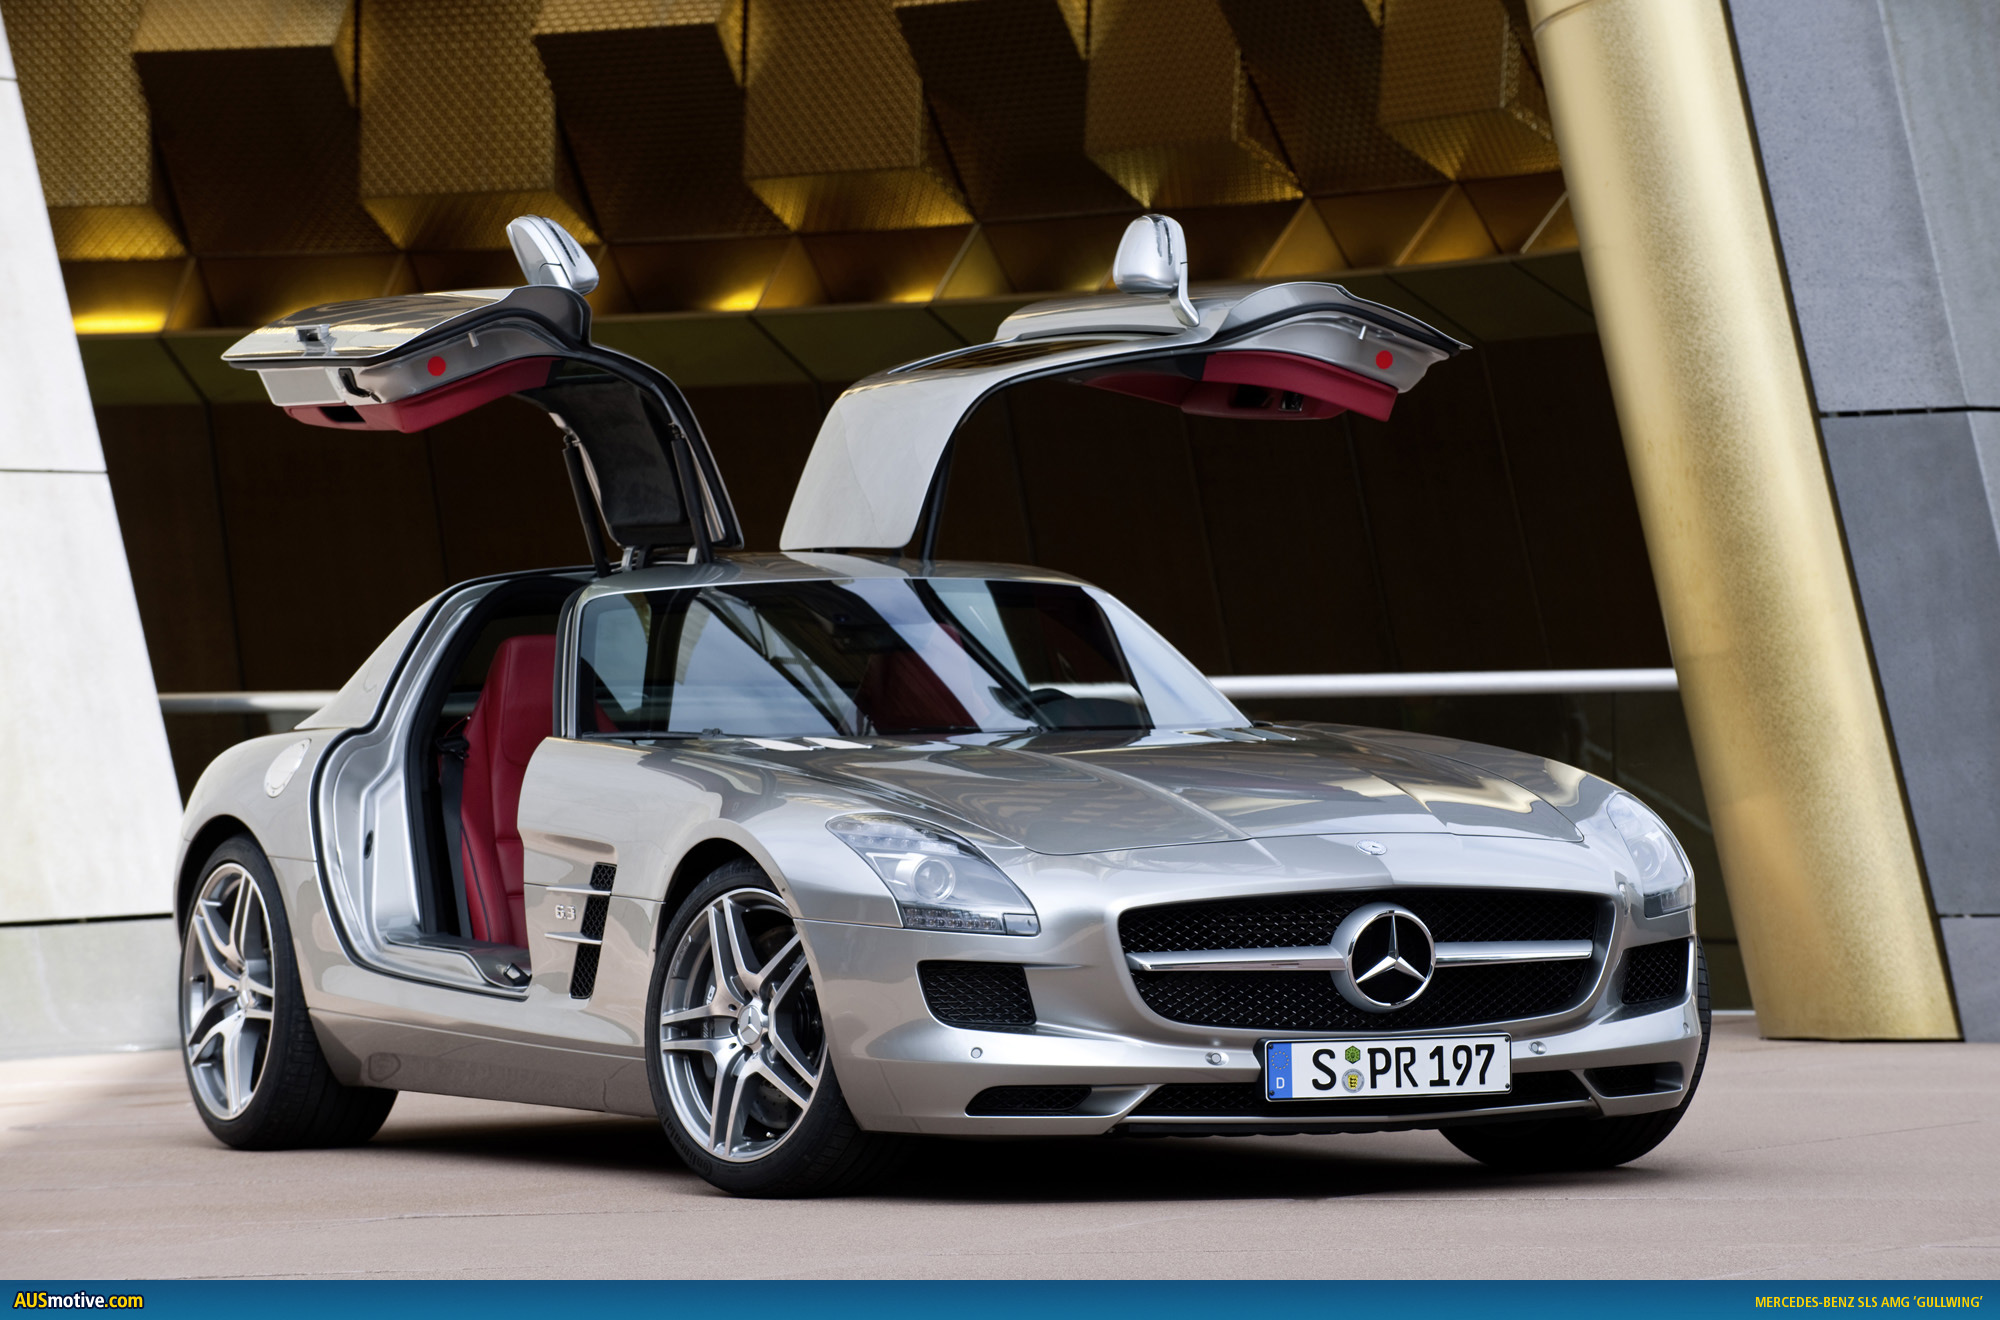 2010 mercedes benz sls amg photo gallery for How much mercedes benz